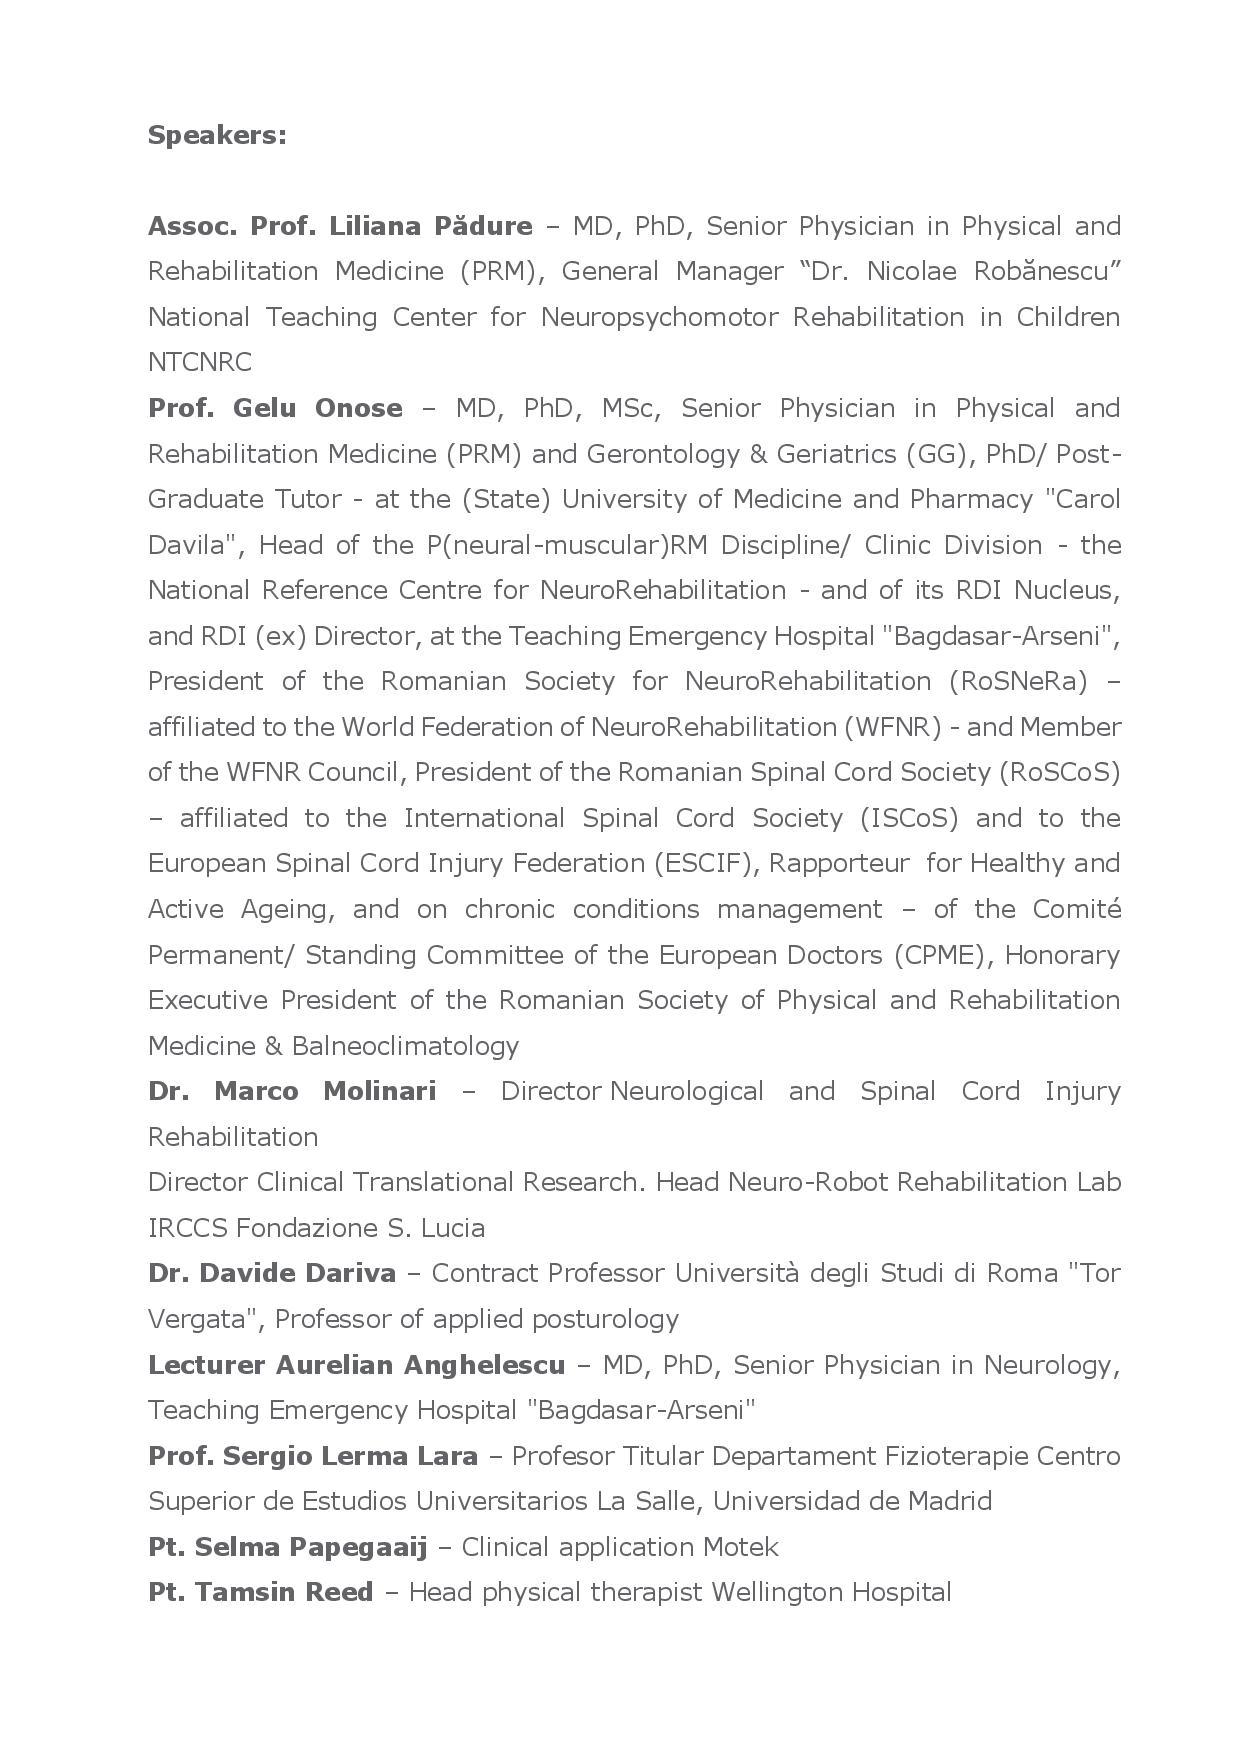 ADVANCED NEUROREHABILITATION PROCEDURES - 2nd ACADEMIC SESSION 19-20 October 2017, Bucharest pg4/5